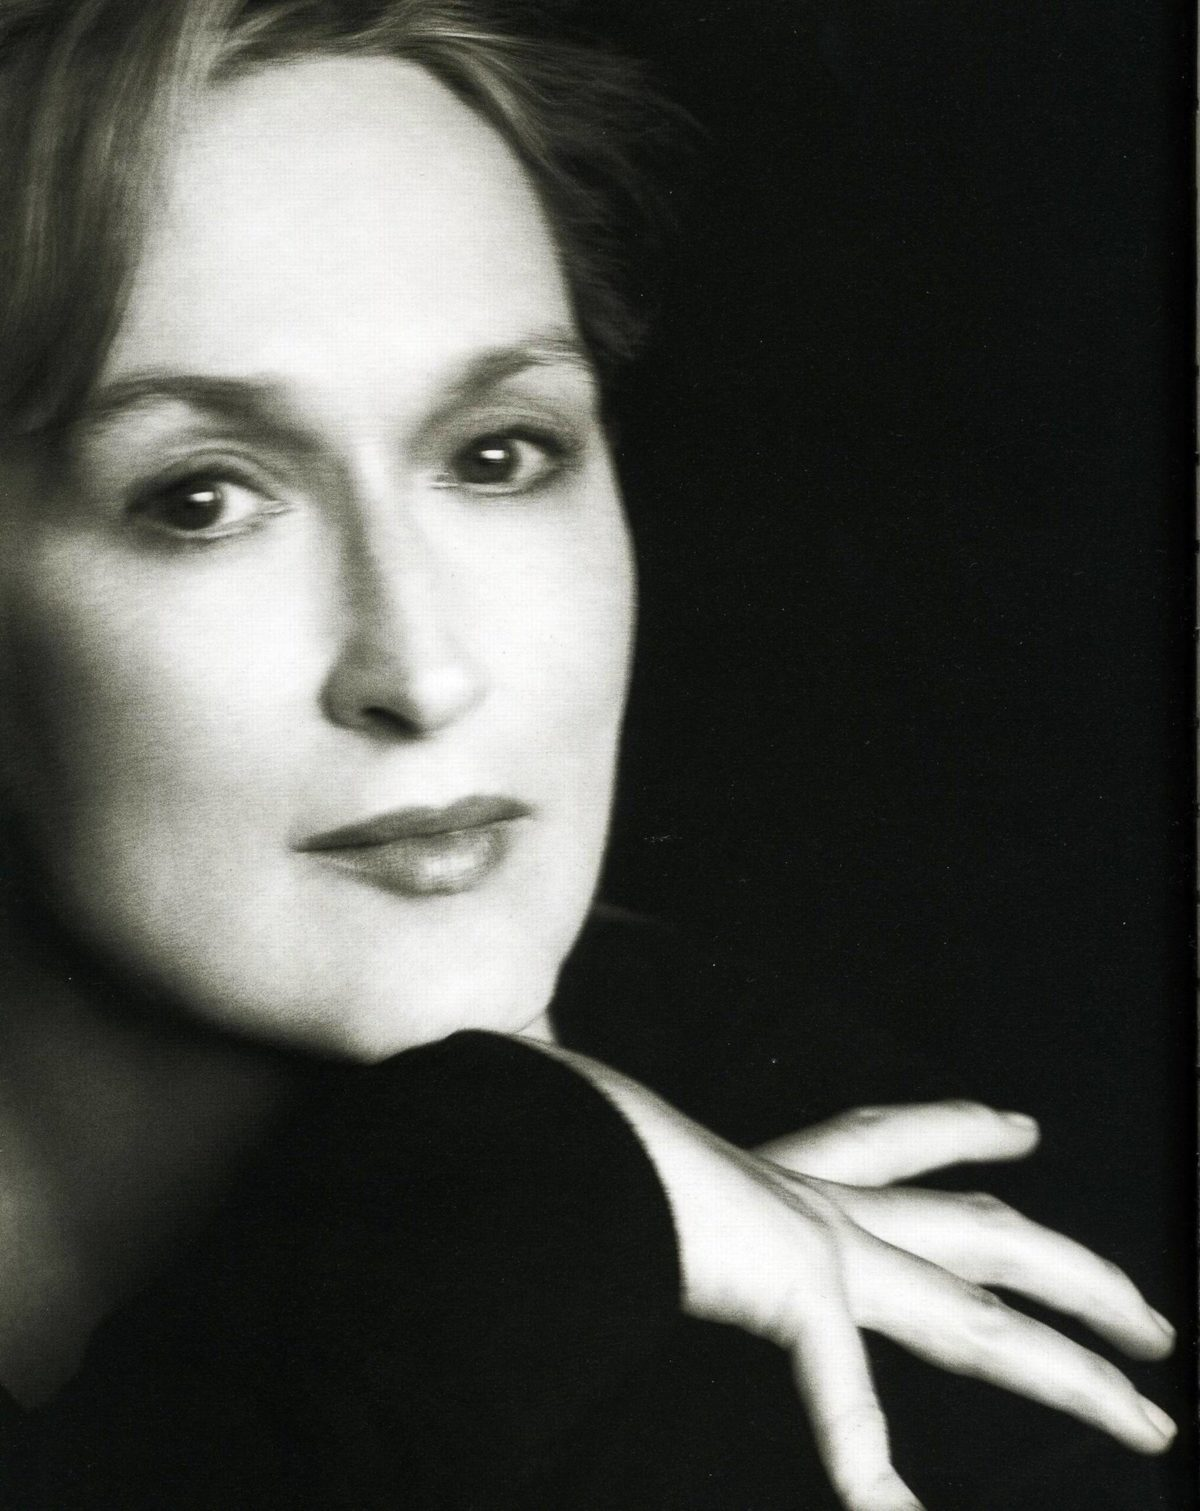 Meryl Streep photo 41 of 400 pics, wallpaper – photo #169845 …